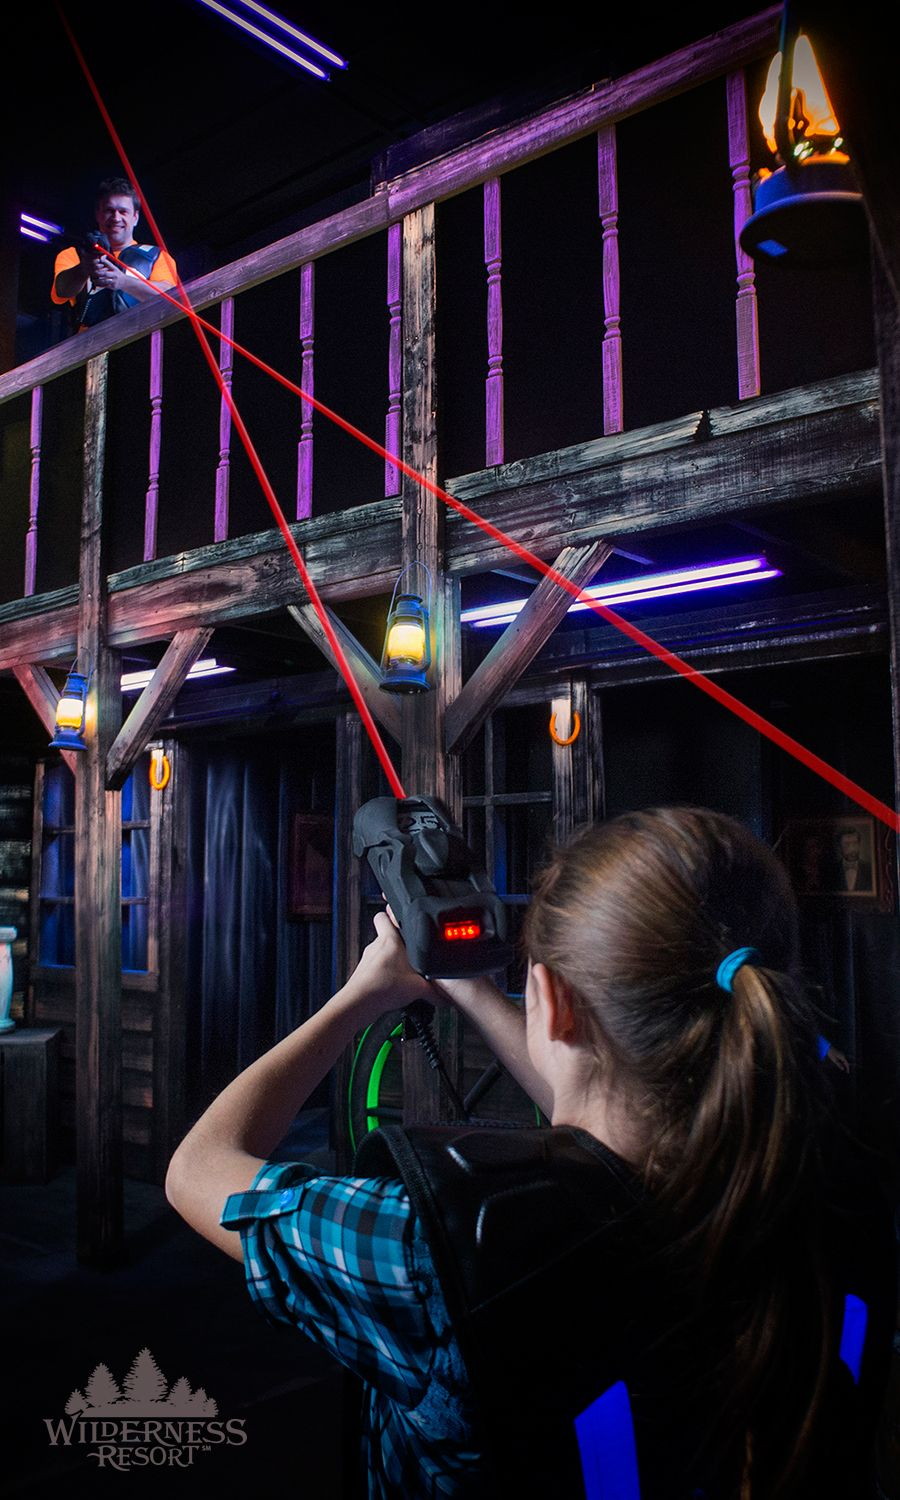 Ok Corral Lazer Tag Wilderness Resort Wisconsin Dells Attractions Lazer Tag Laser Tag Party Wilderness Resort